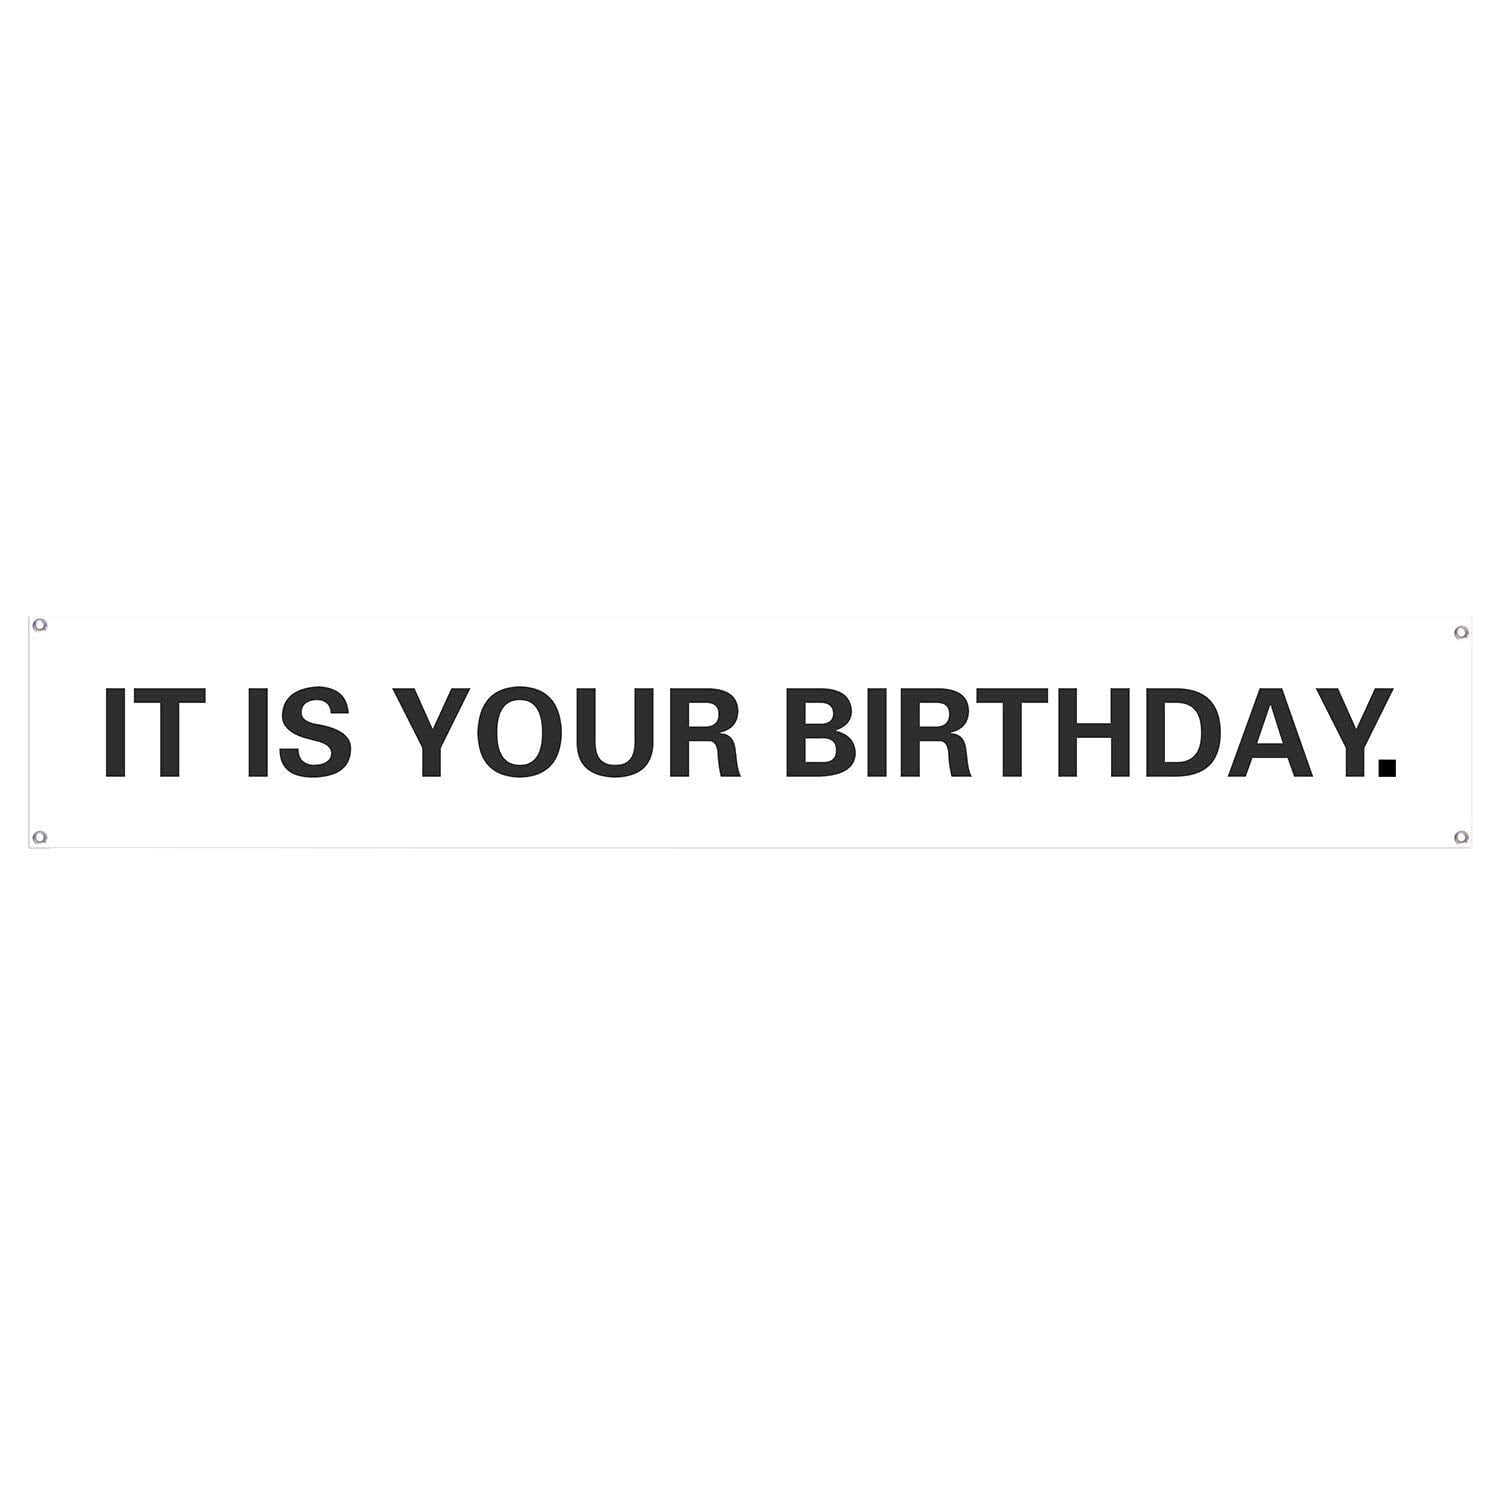 It Is Your Birthday Banner The Office Vinyl Party Banner With Metal Hanging Rings Walmart Com Walmart Com